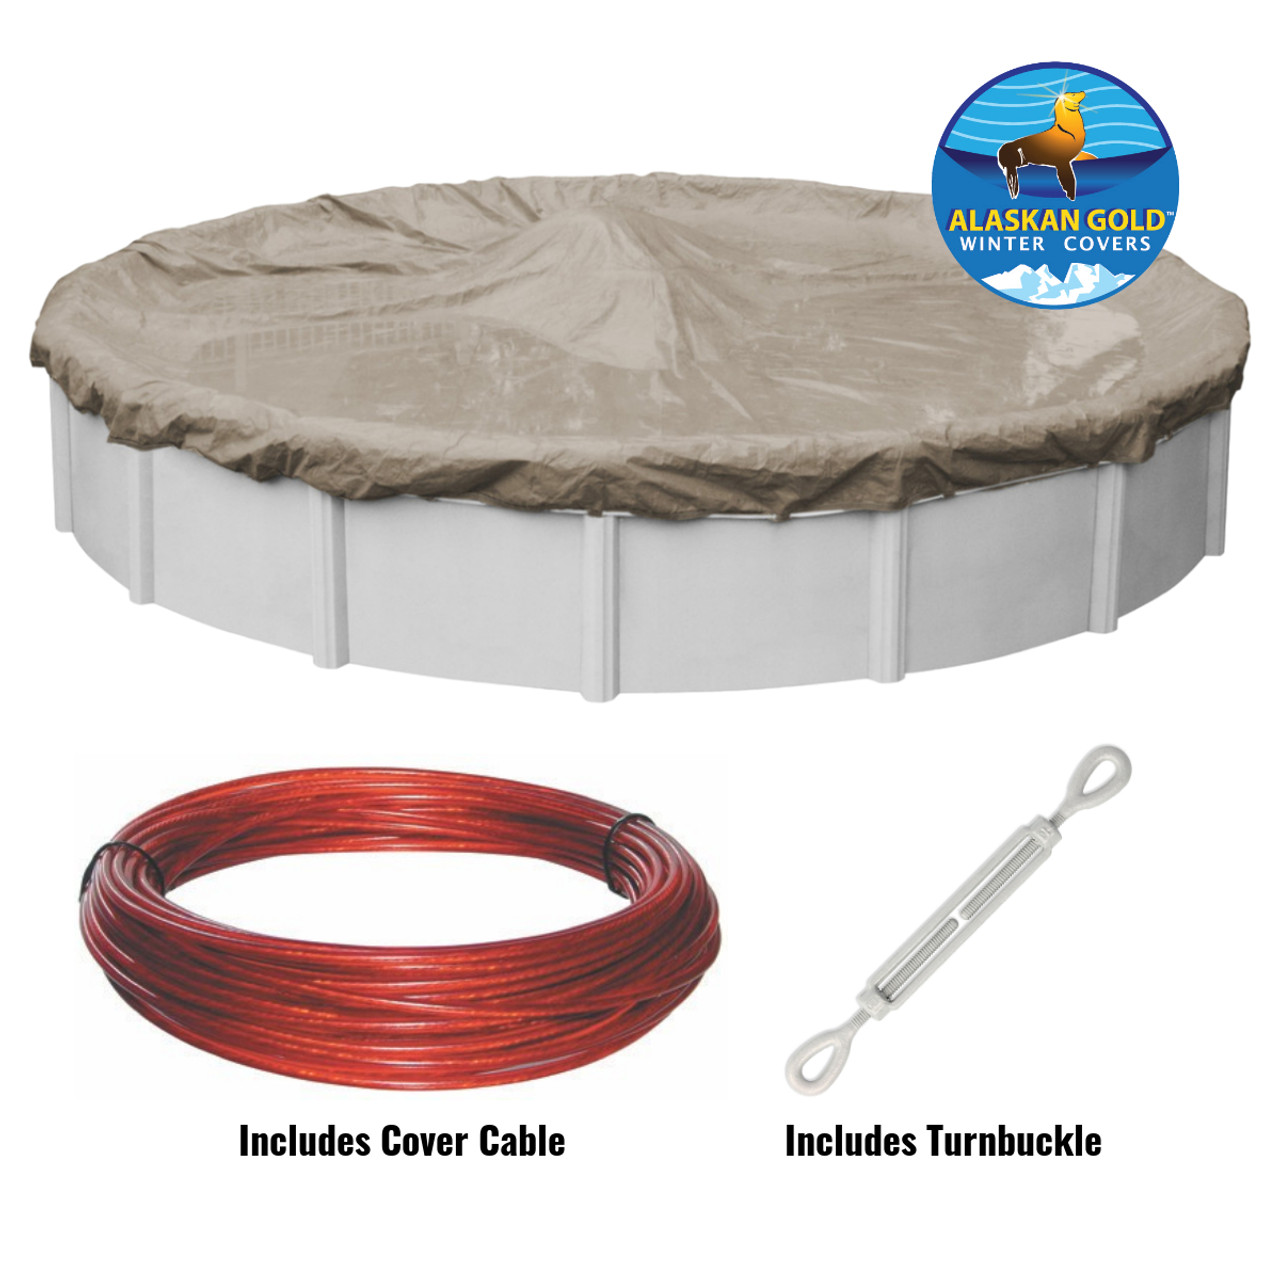 Above Ground Pool Winter Cover 24 Ft Round Alaskan Gold Or Silver Above Ground Winter Swimming Pool Cover Includes Cable And Turnbuckle